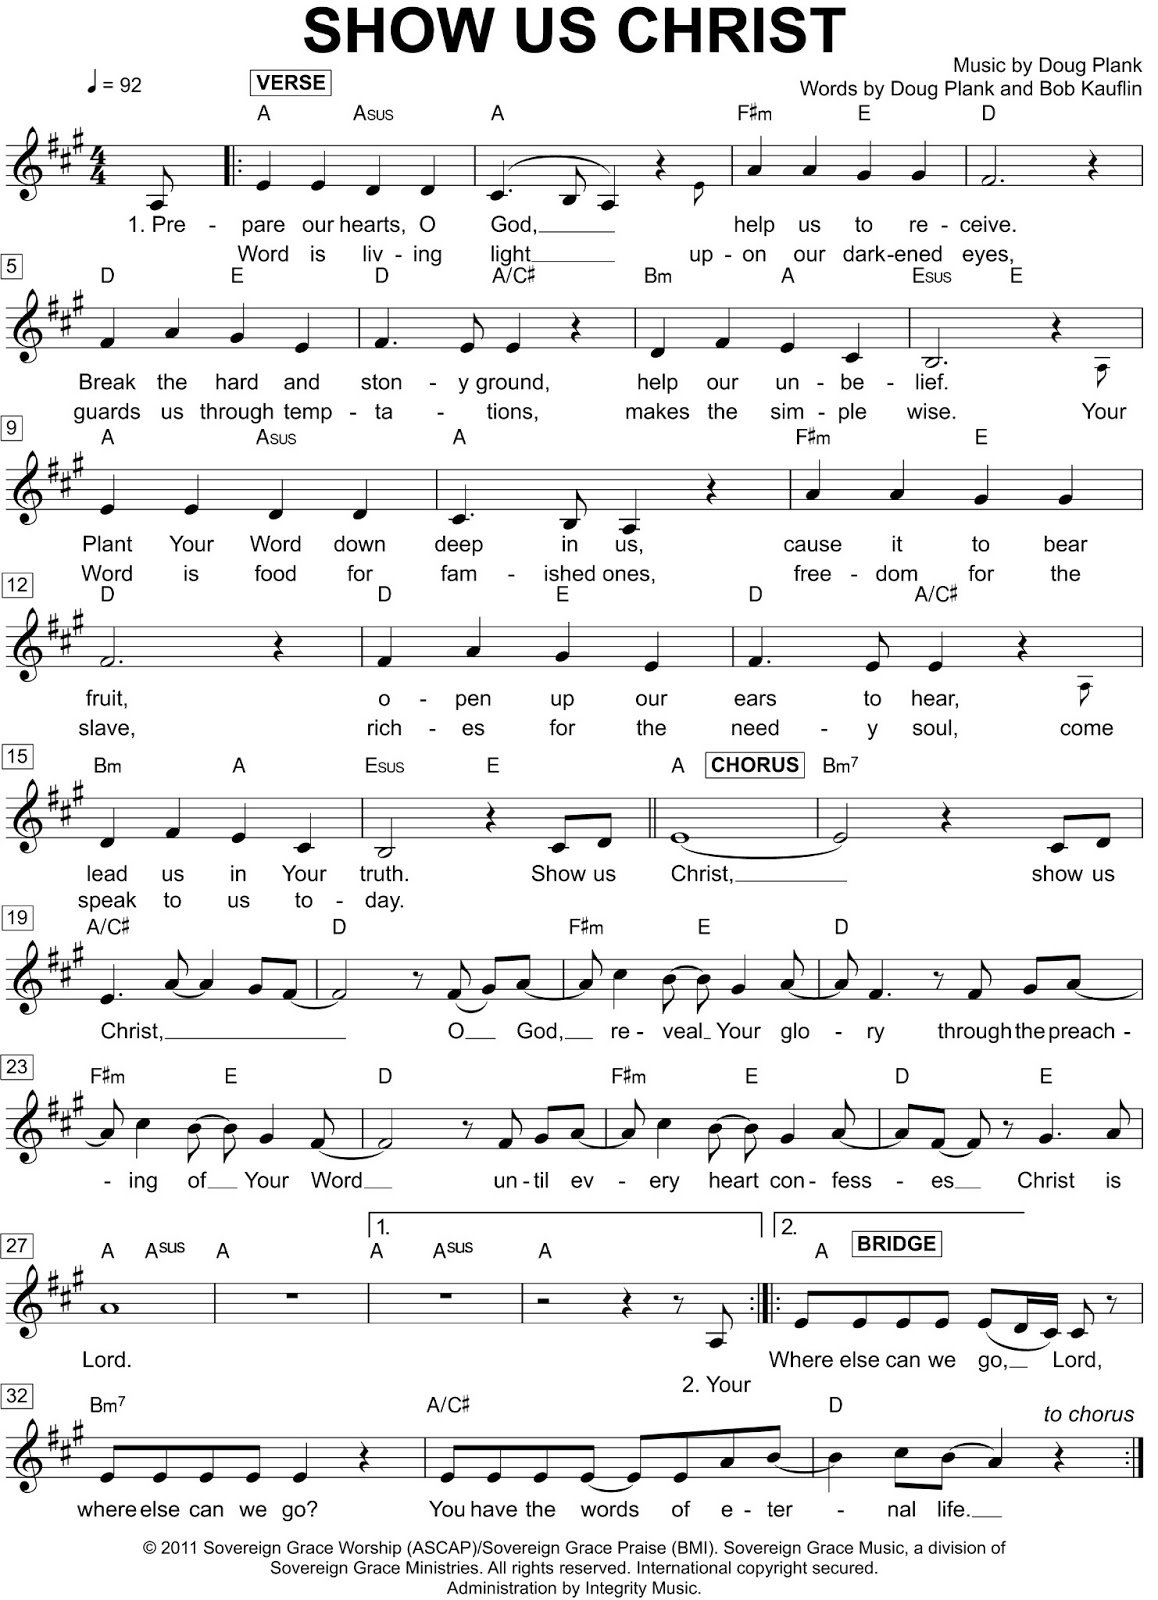 Enriched affections april 2013 otherwise the song is wonderful as is in addition to the lead sheet below you can download many other chord charts in various keys from sovereign graces hexwebz Choice Image